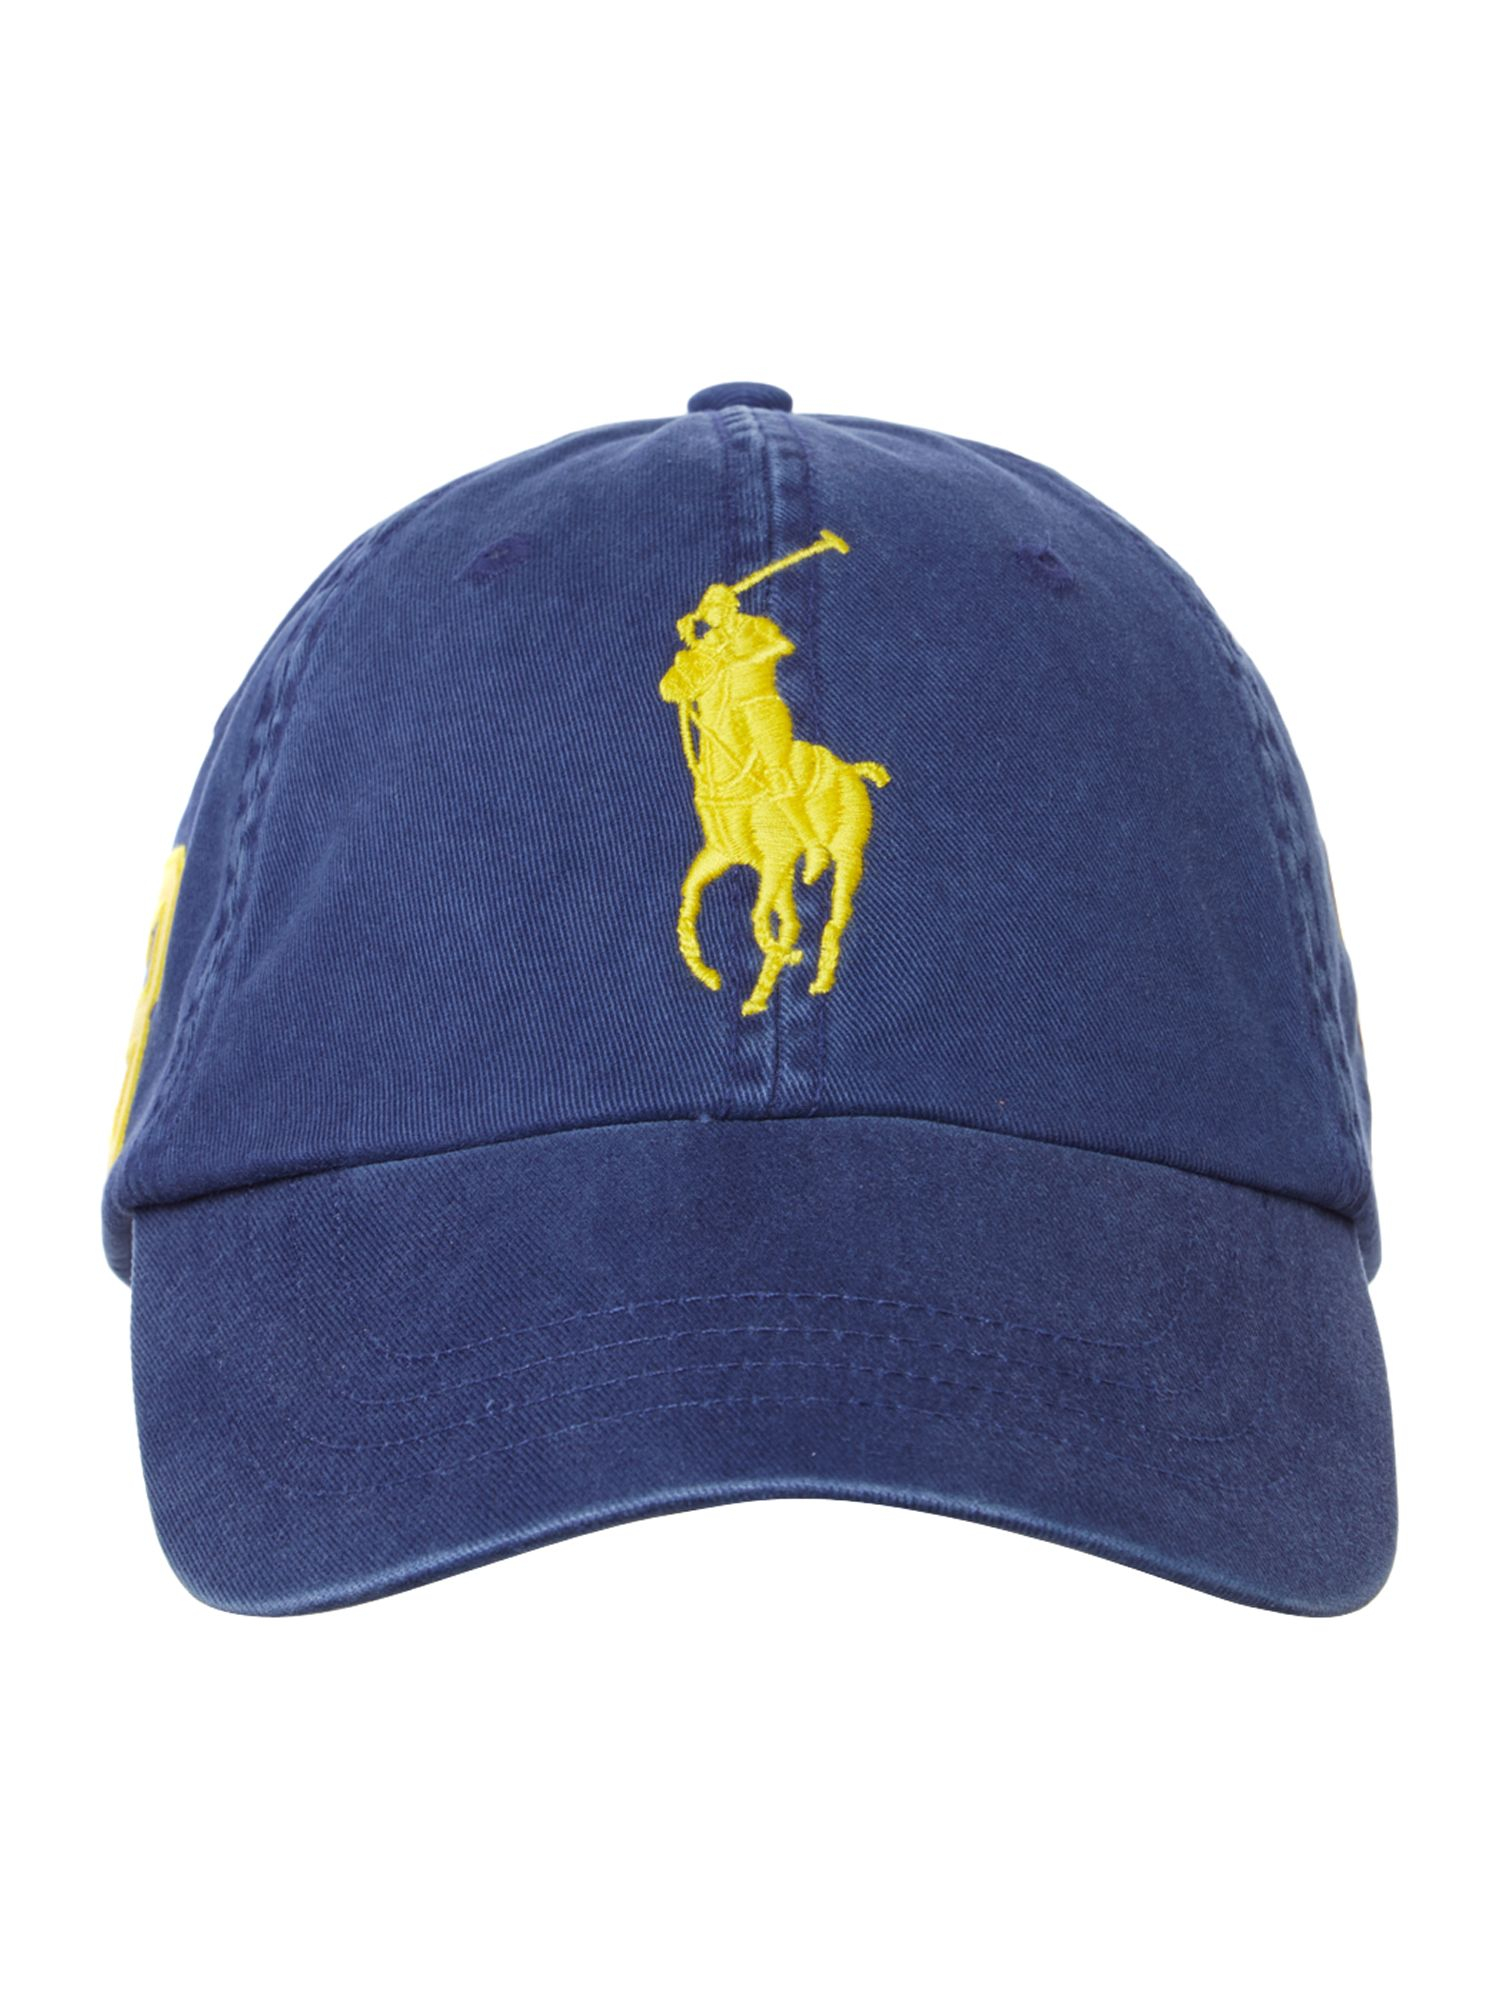 polo ralph lauren no3 polo pony logo cap in blue for men. Black Bedroom Furniture Sets. Home Design Ideas